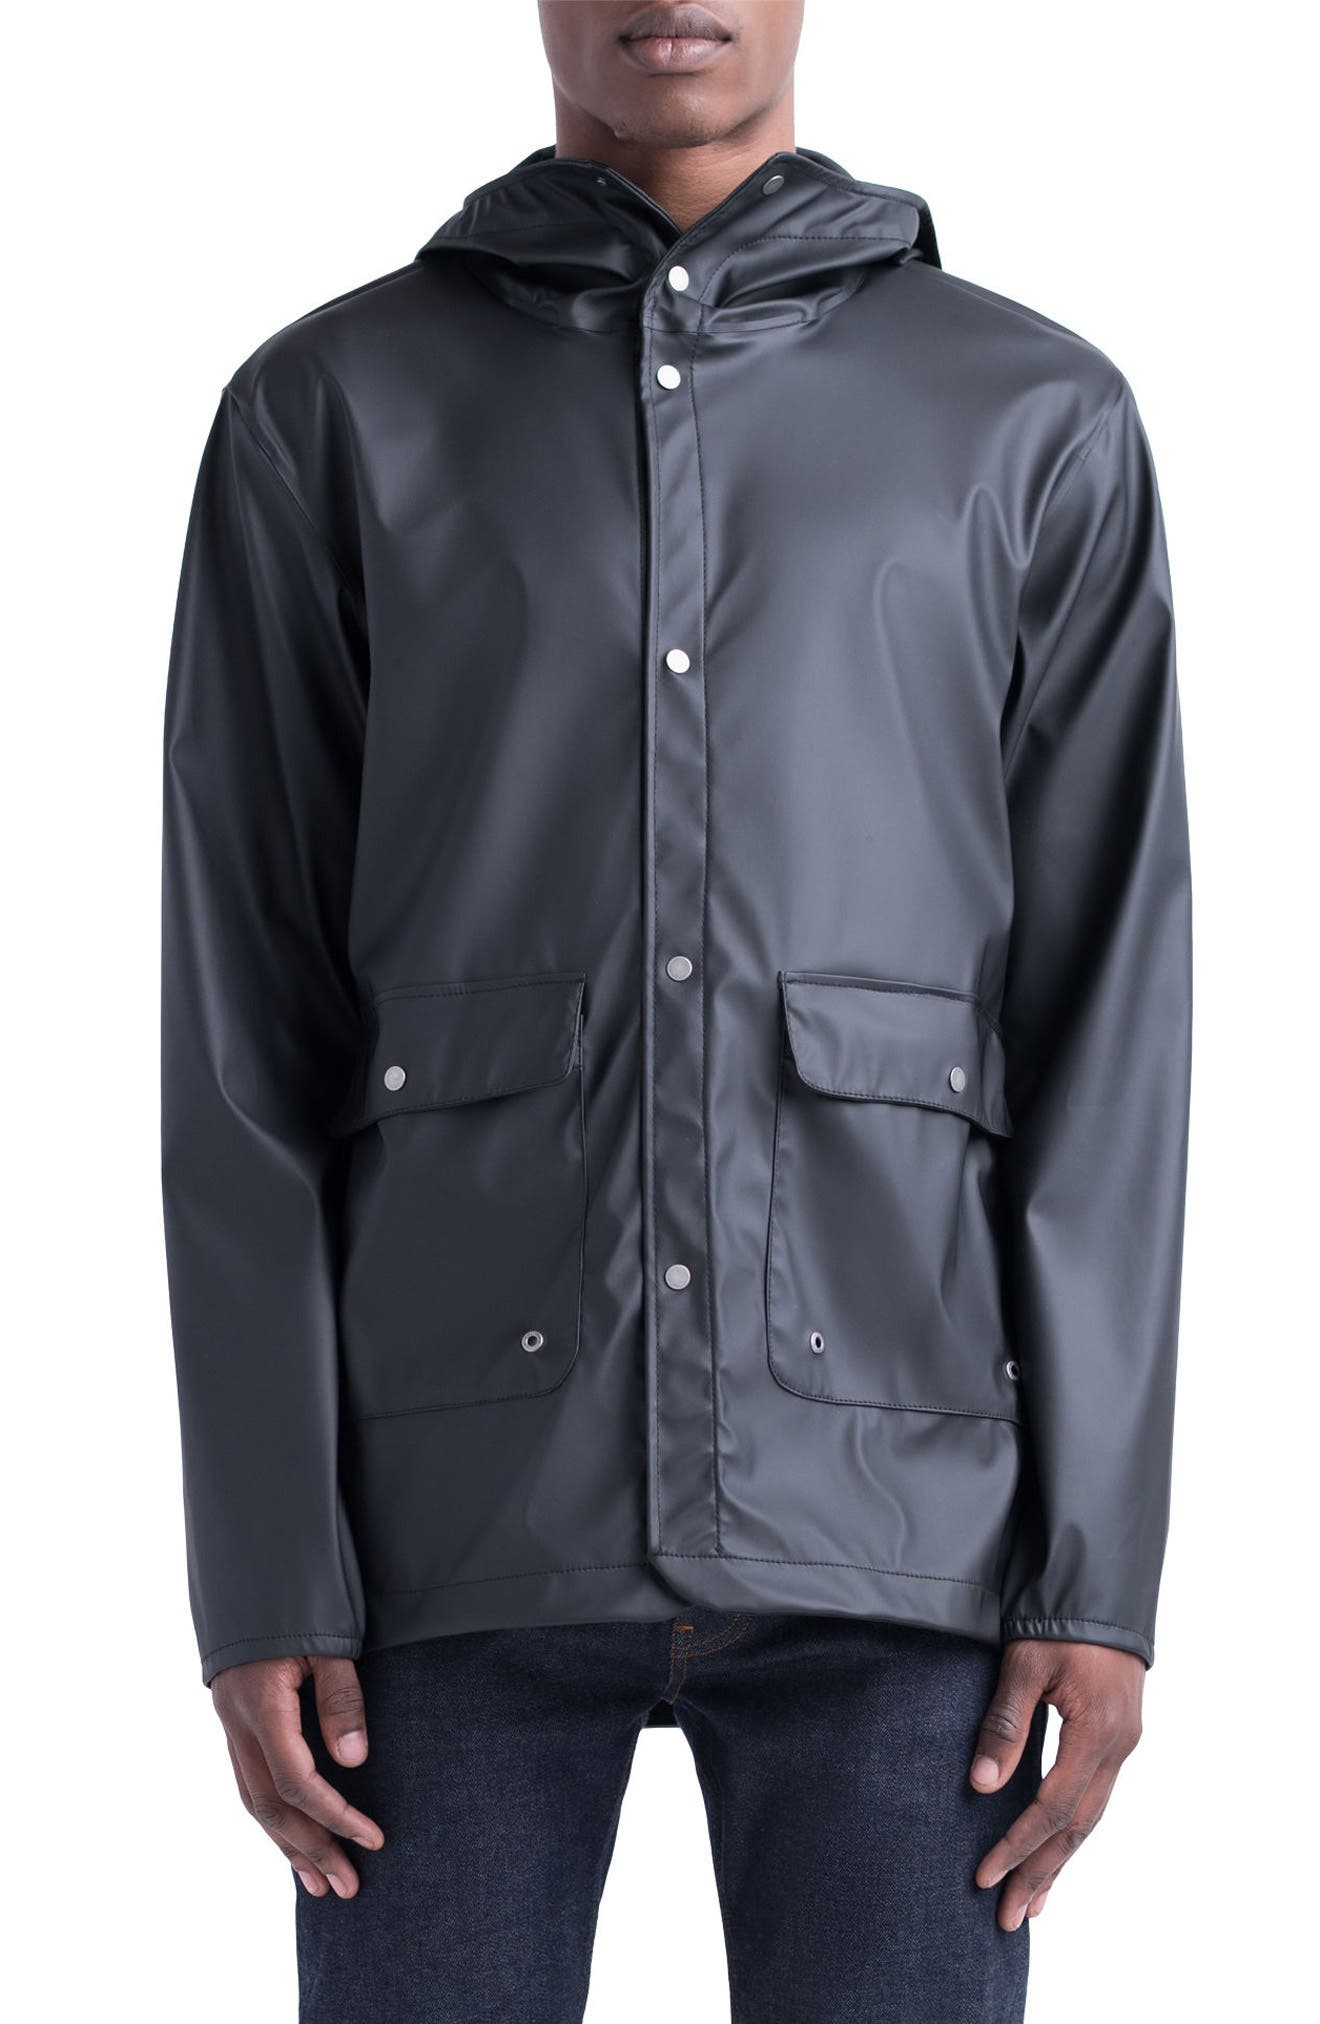 Forecast Parka,                         Main,                         color, Black